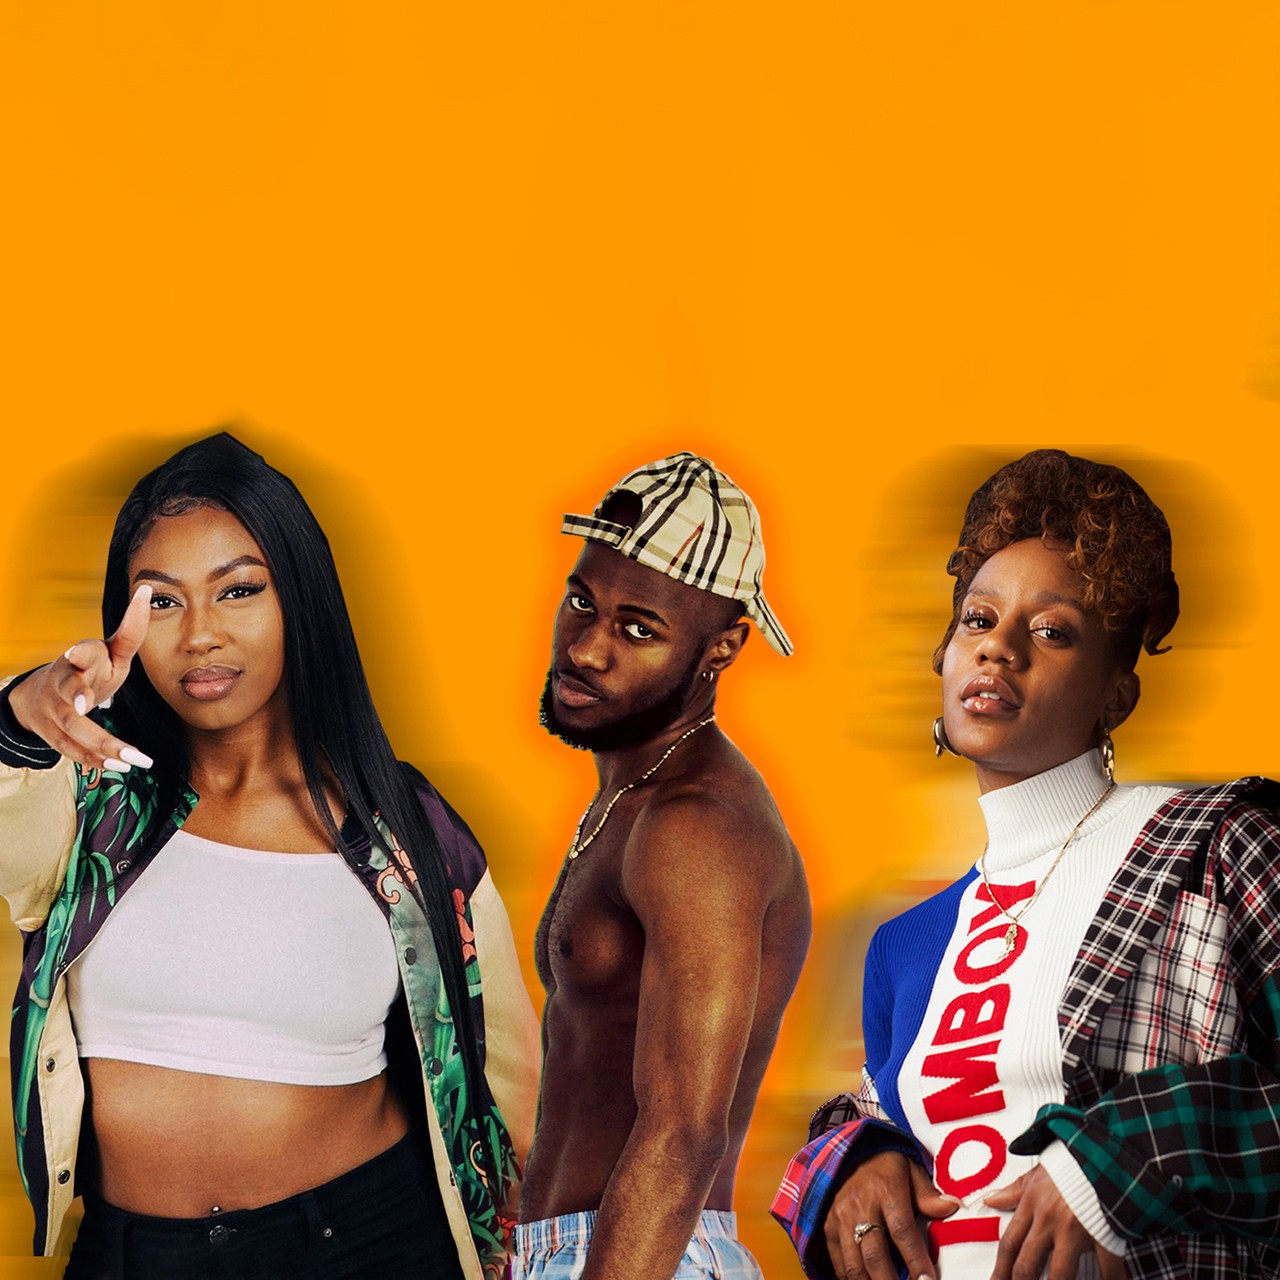 Best New UK Music Acts Kadiata Taliwhoah Ms. Banks Dave GrmDaily AfroSwing R&B Hip-Hop Musicians